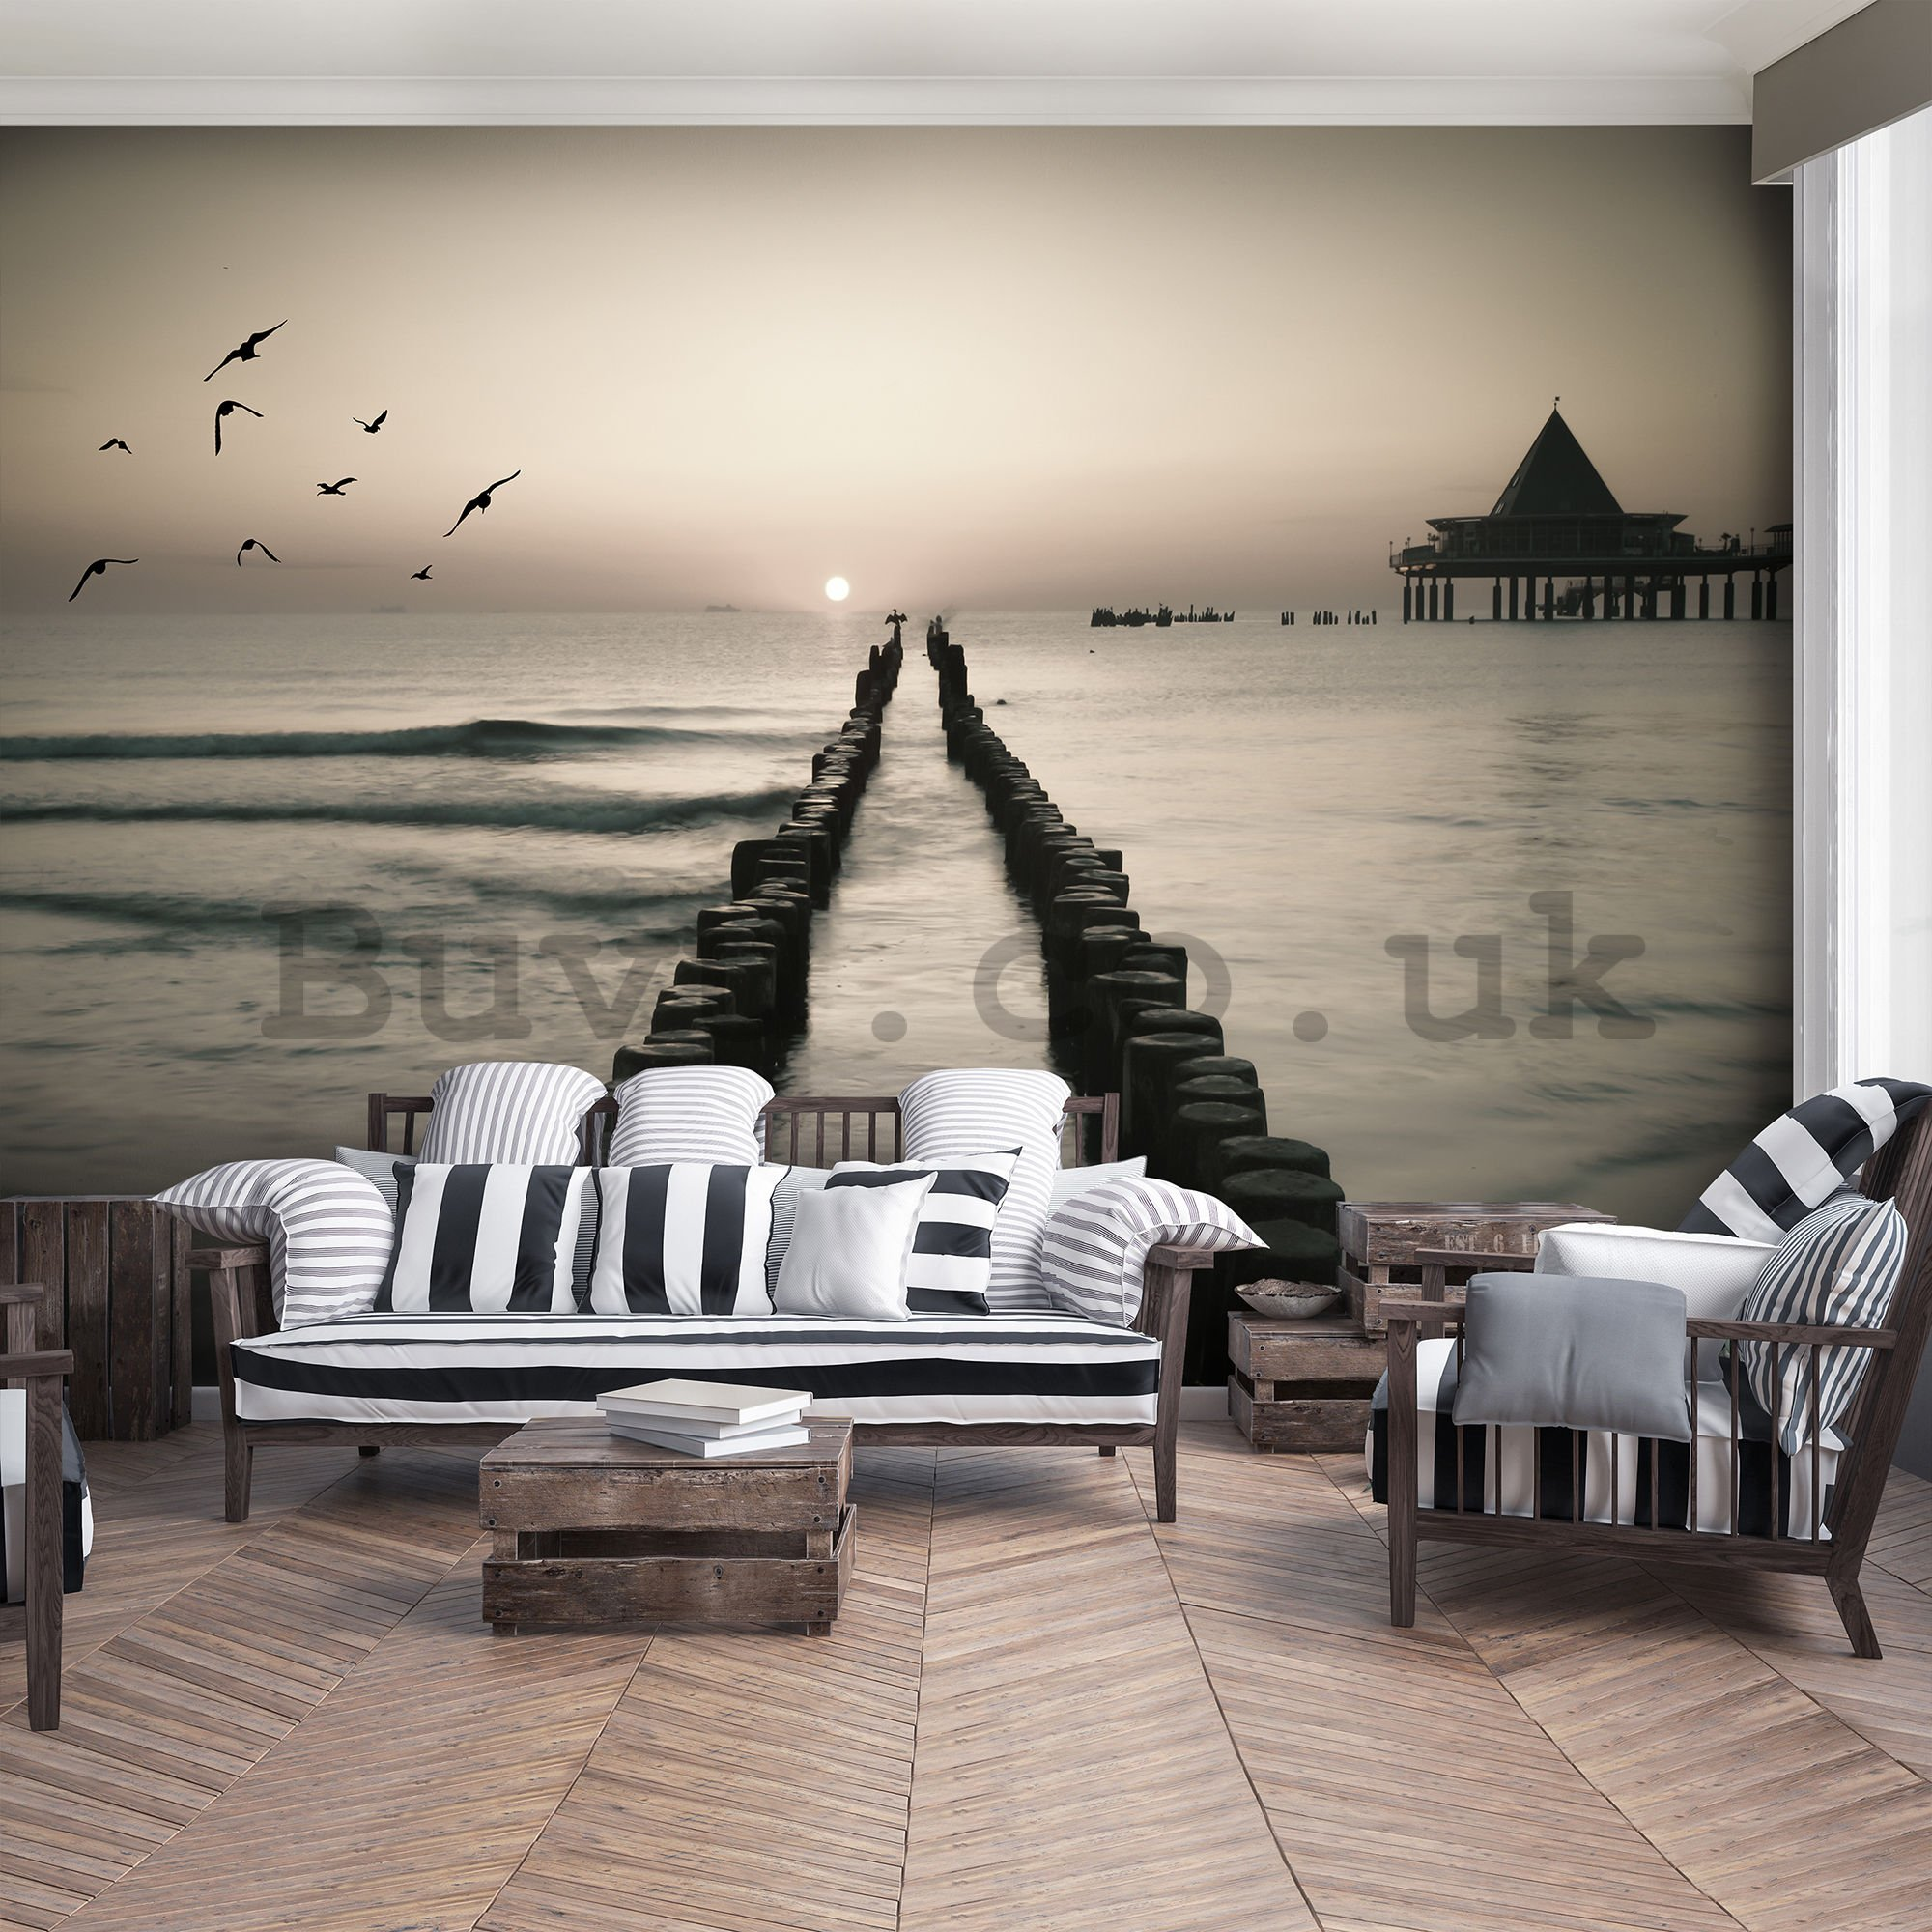 Wall mural: Journey through the sea - 104x152,5 cm